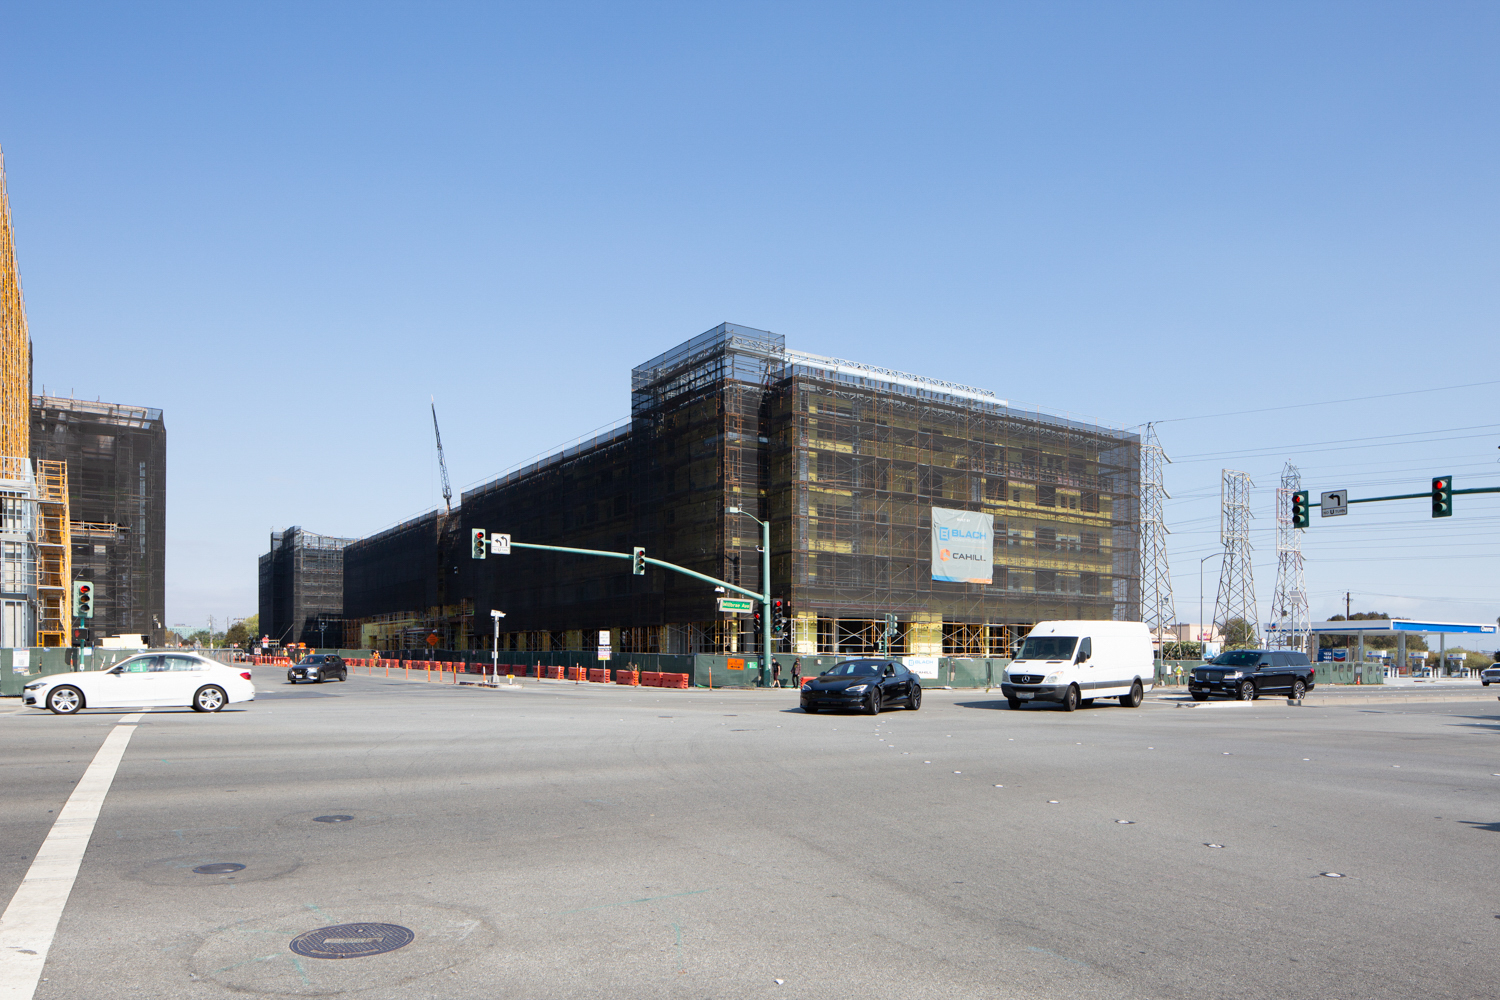 Gateway at Millbrae hotel construction, image by Andrew Campbell Nelson